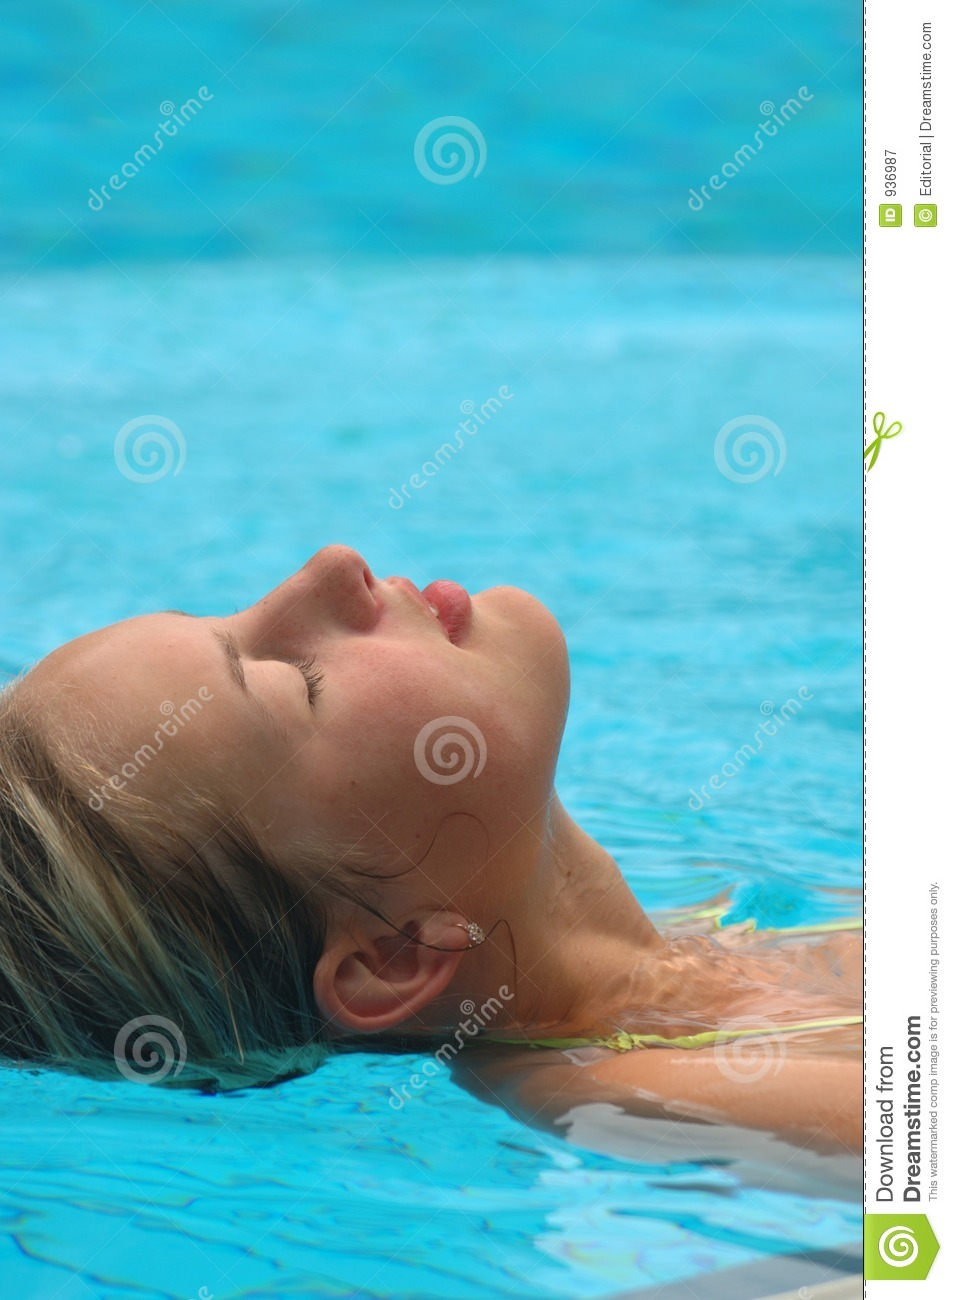 Royalty Free Stock Photography Lady Relaxing In Pool Image 936987